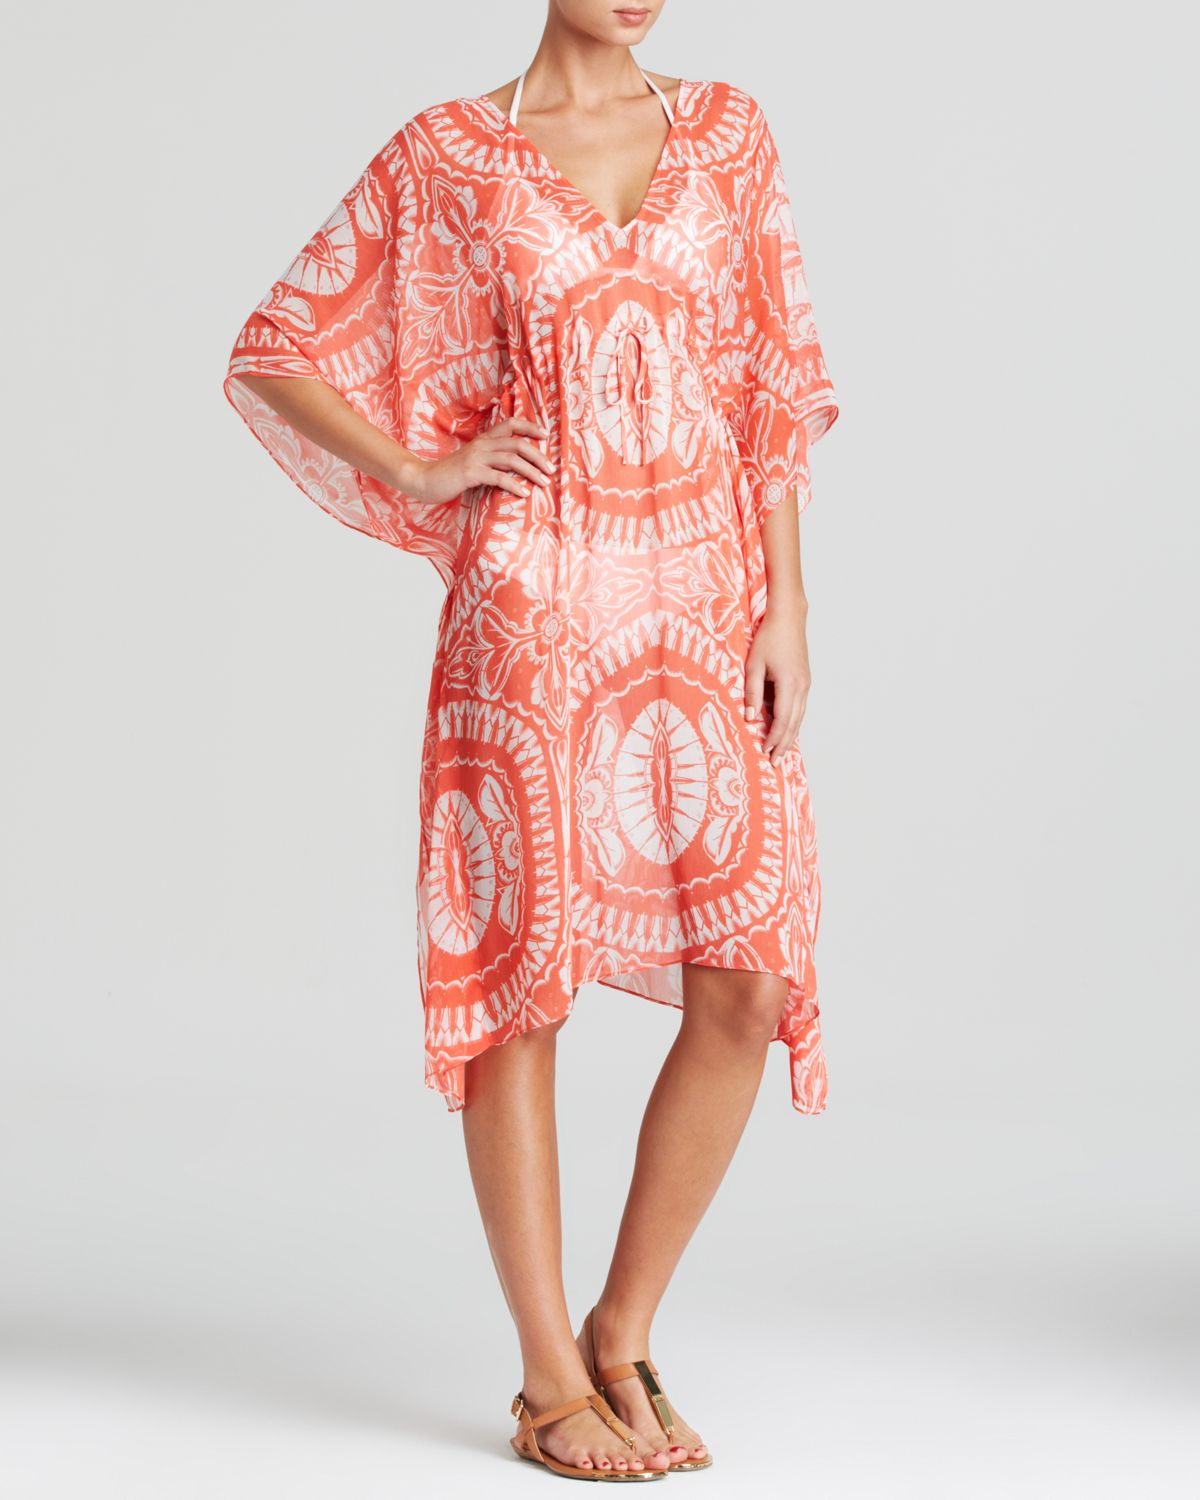 faf82f9d970d1 Lyst - Echo Maldives Medallion Print Swim Cover Up Caftan in Pink